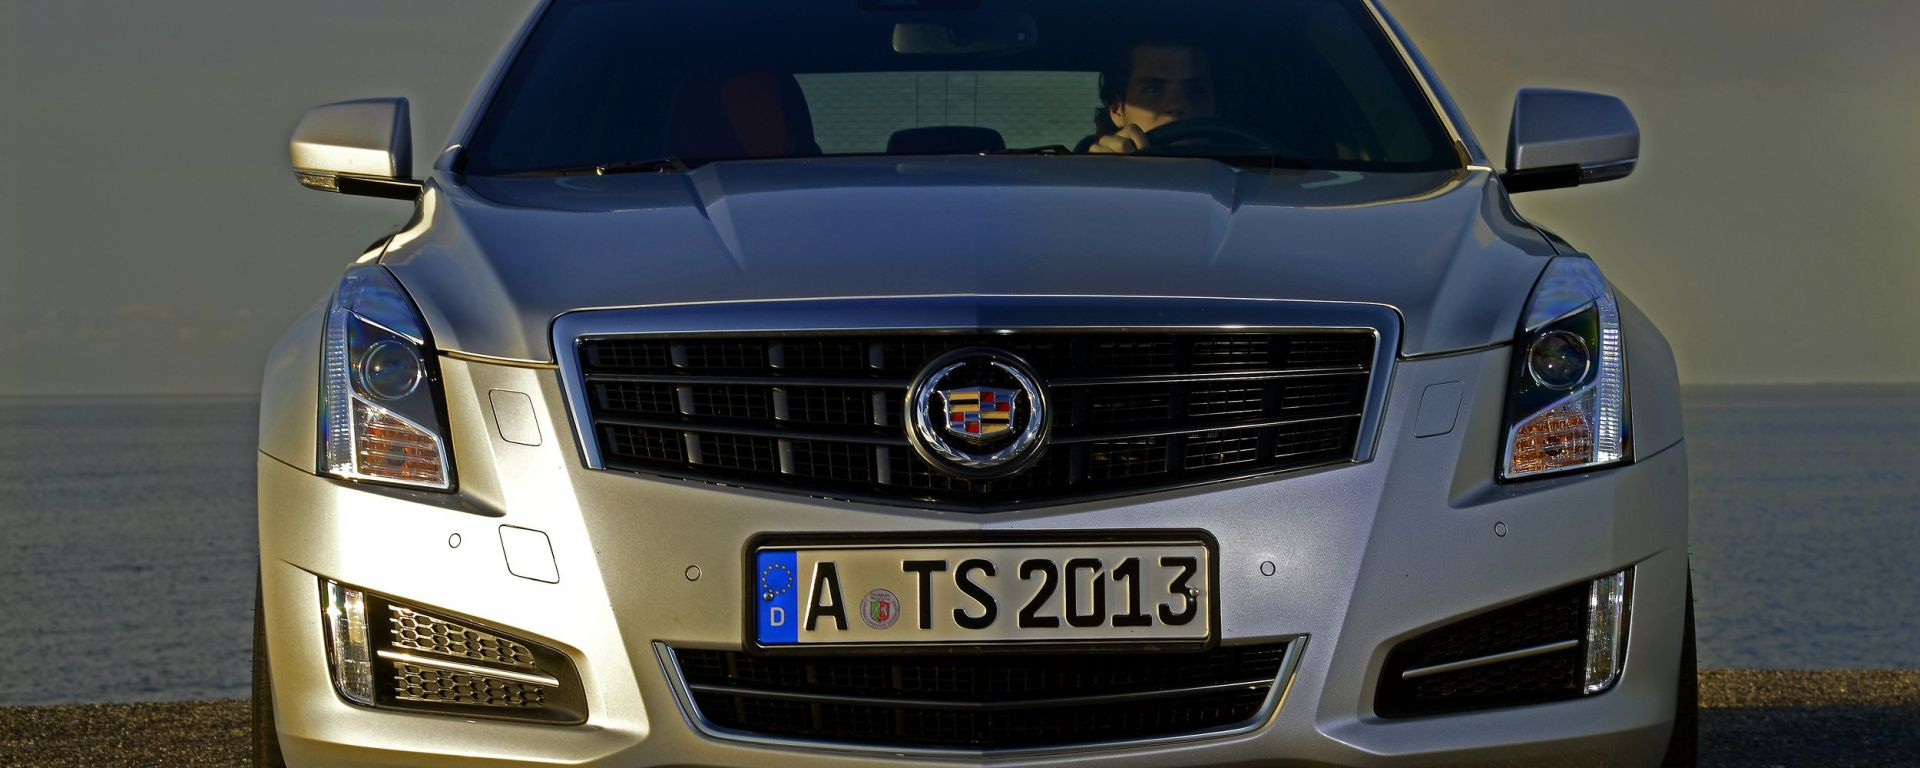 Cadillac ATS, ora anche in video